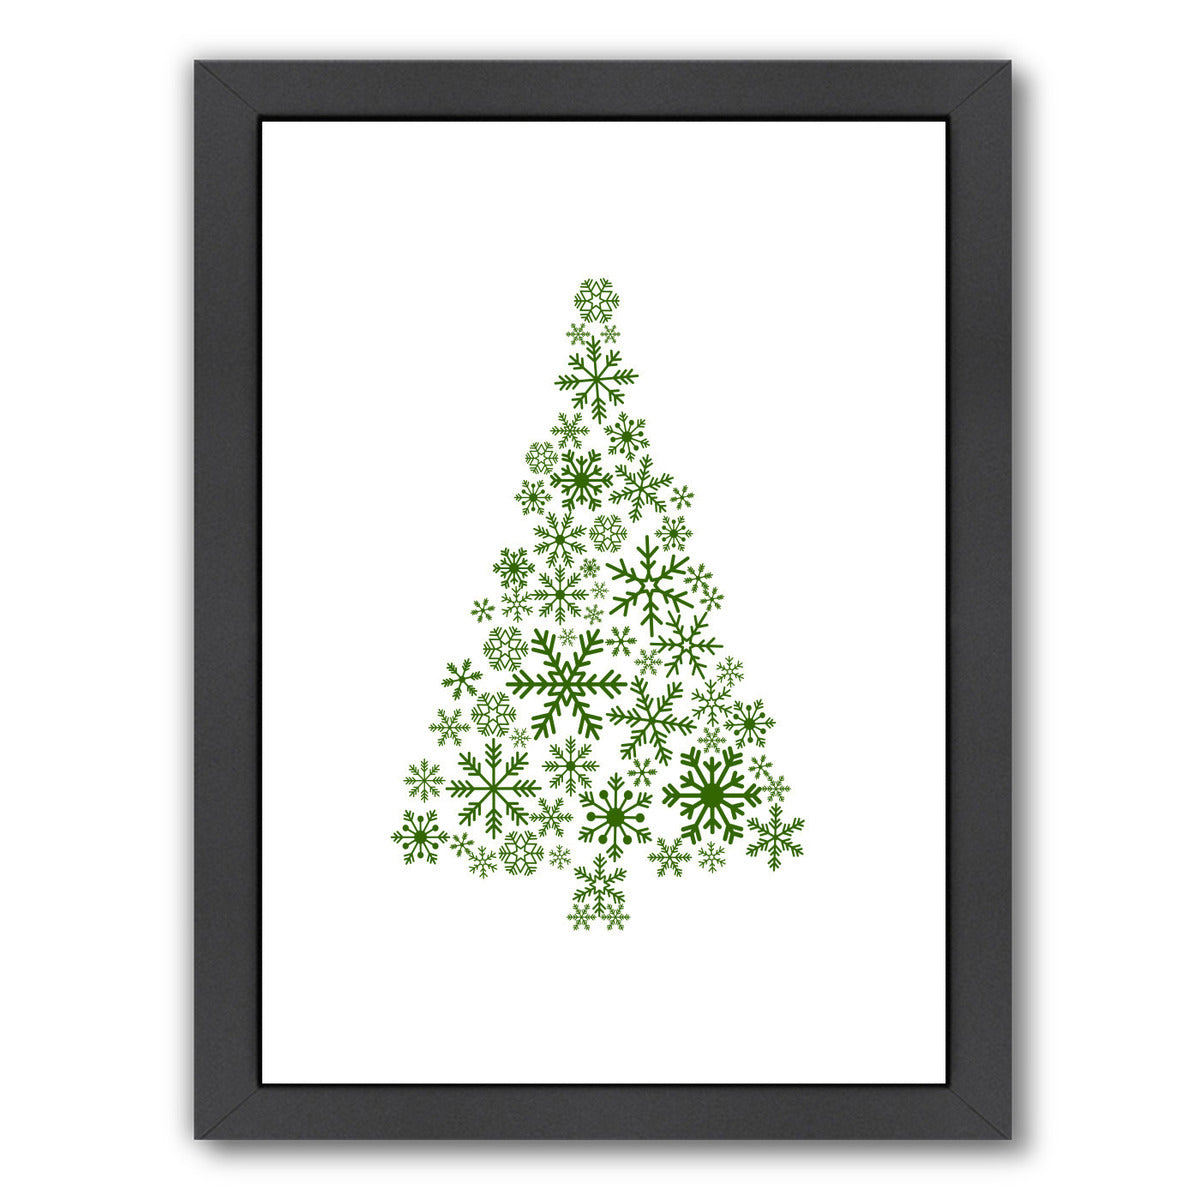 Green Snowflake Tree by Jetty Printables Framed Print - Wall Art - Americanflat